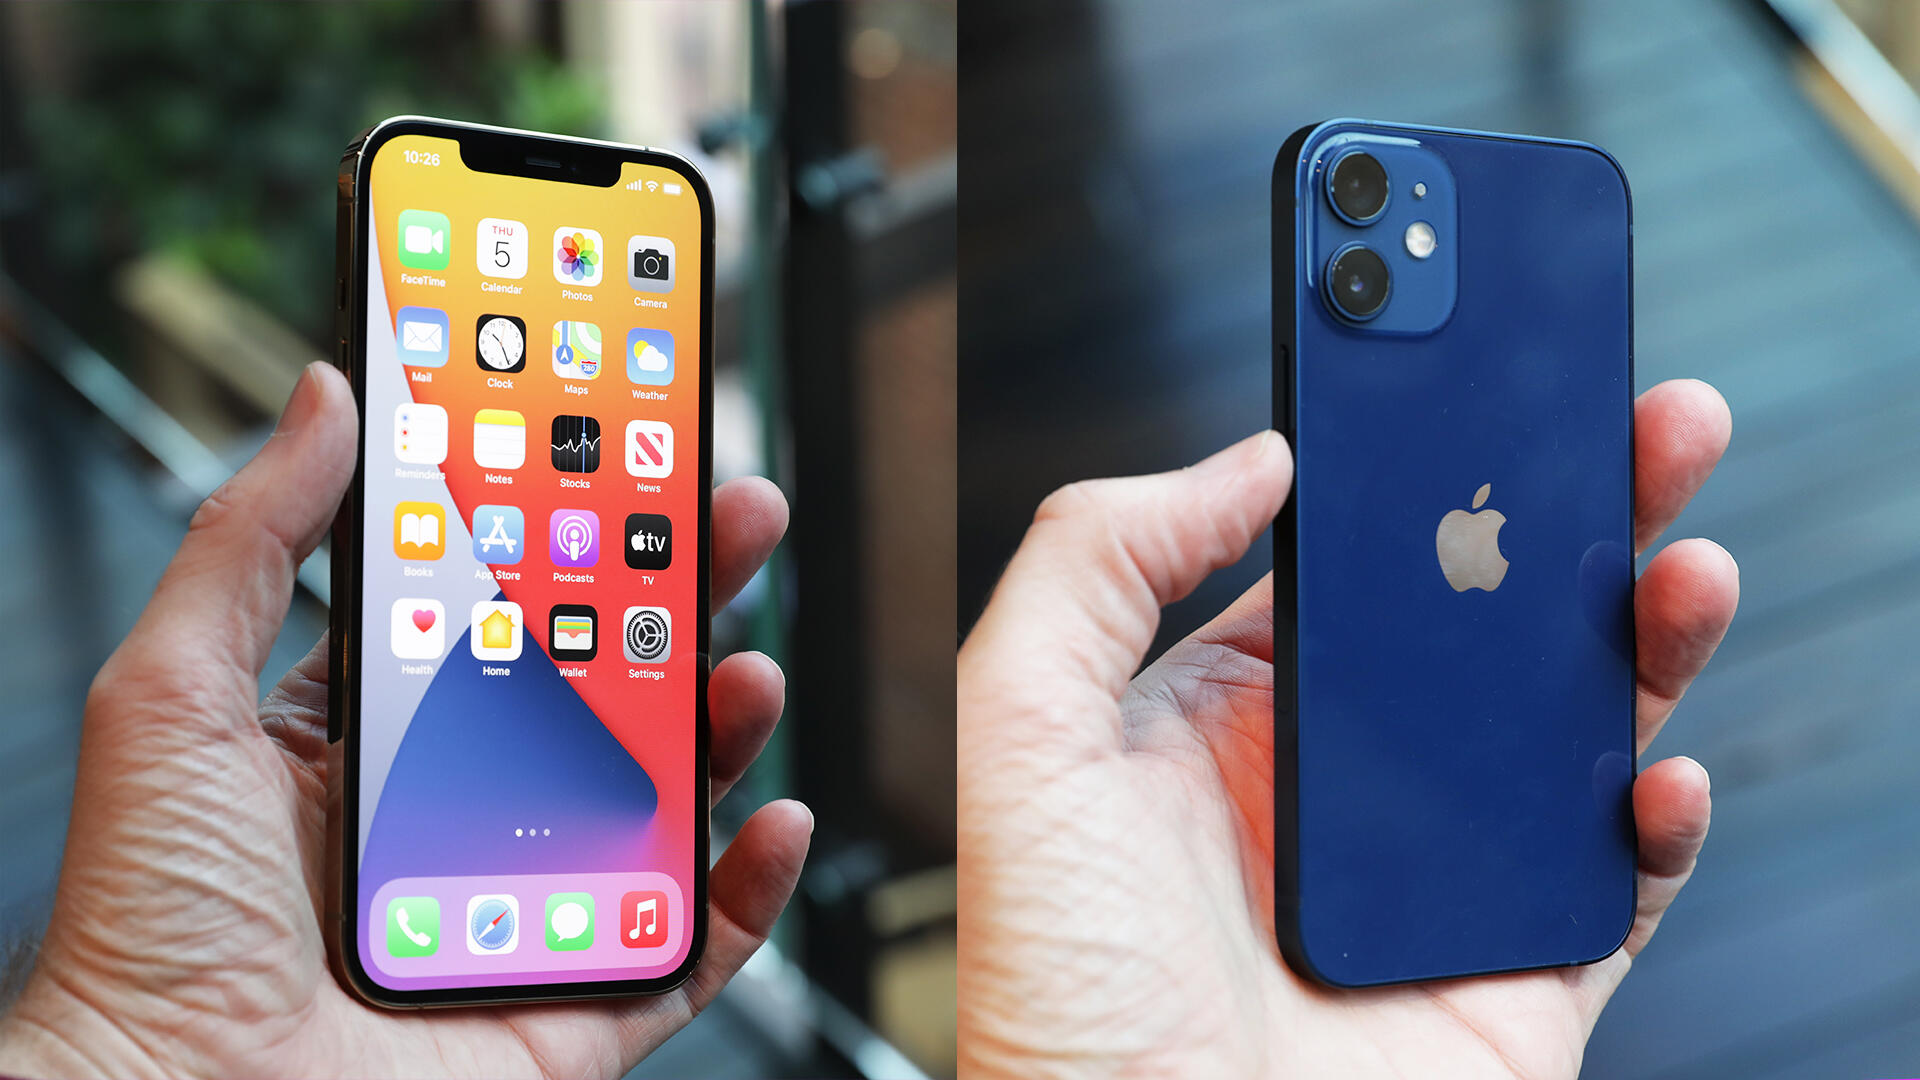 Video: The iPhone 12 Mini may be the most interesting of the bunch